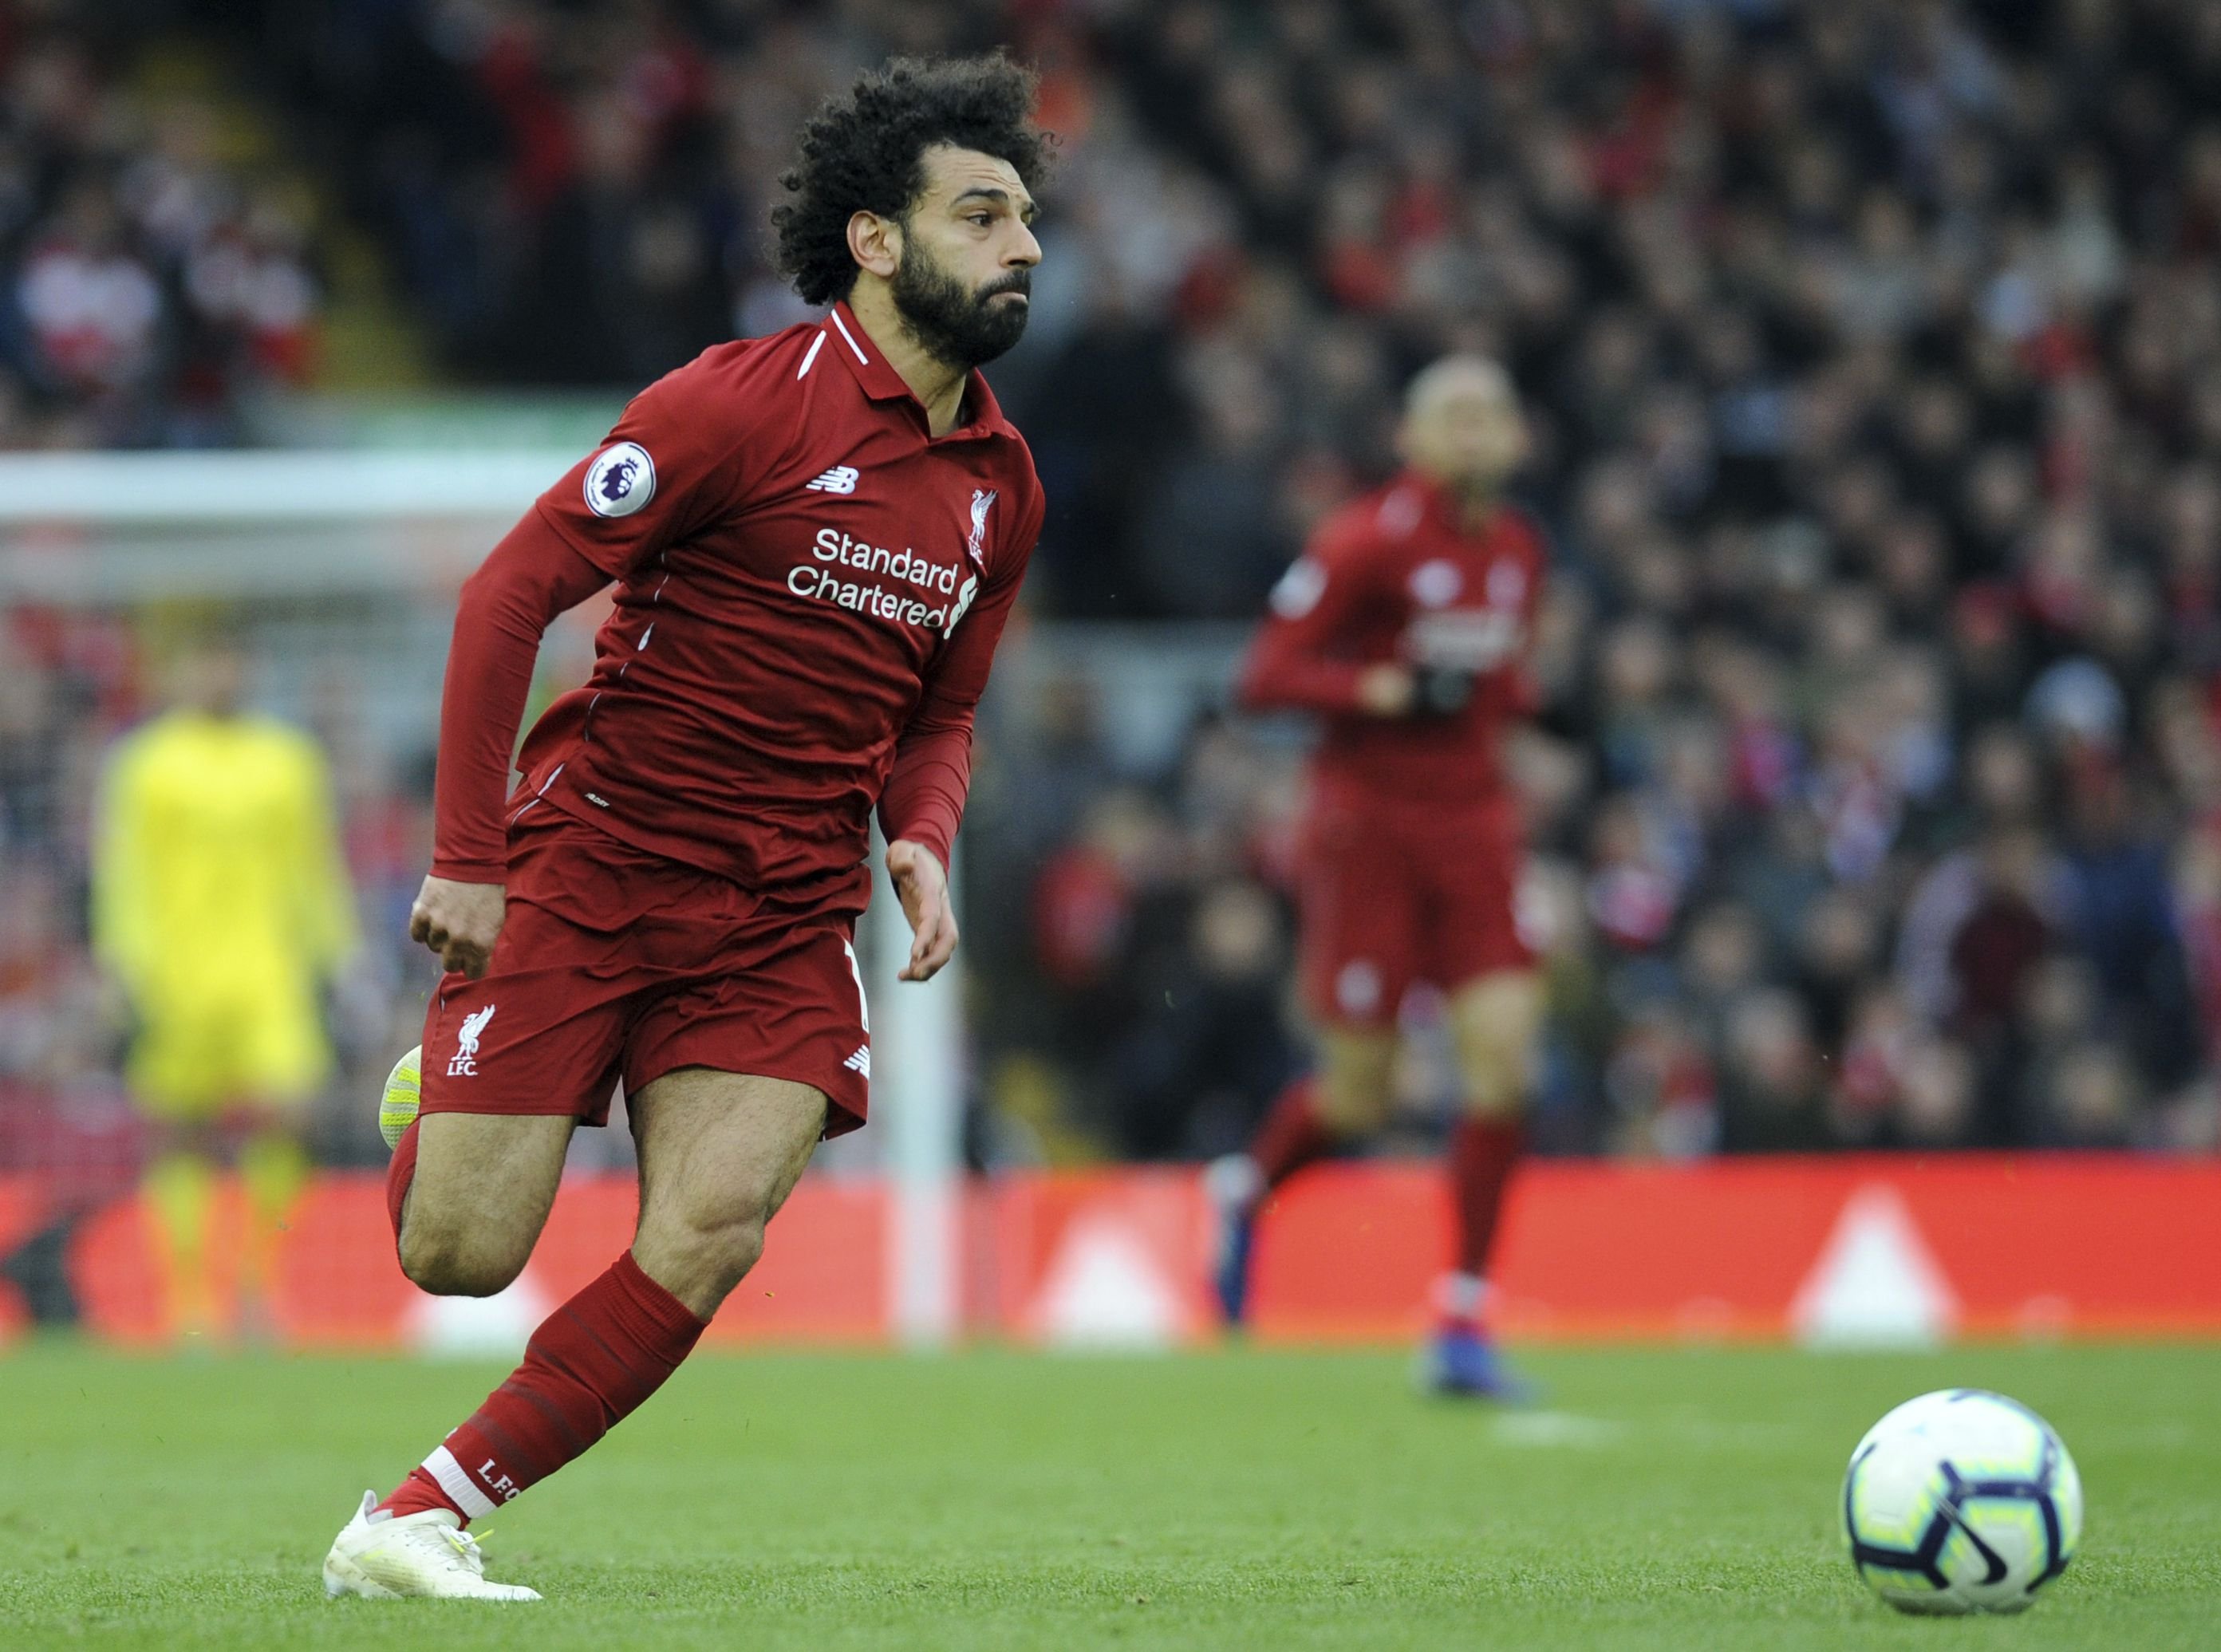 watch live football online free liverpool v chelsea